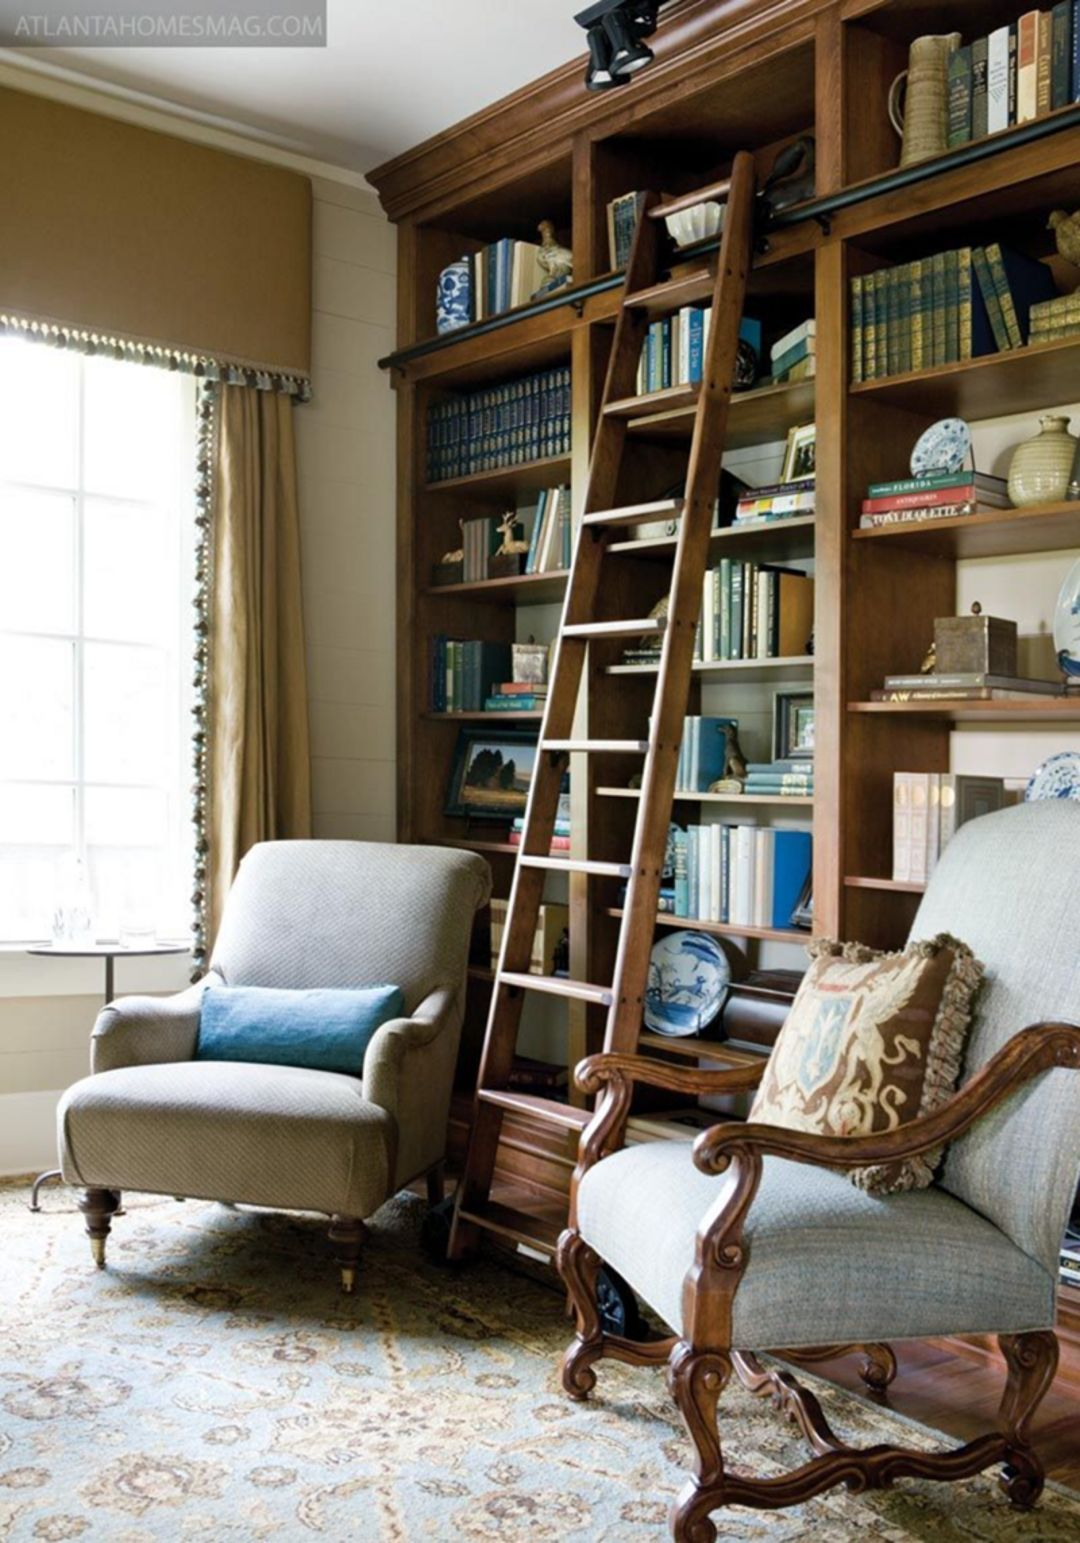 Design Small Home Library 11 Small Home Libraries Home Library Design Cozy Home Library